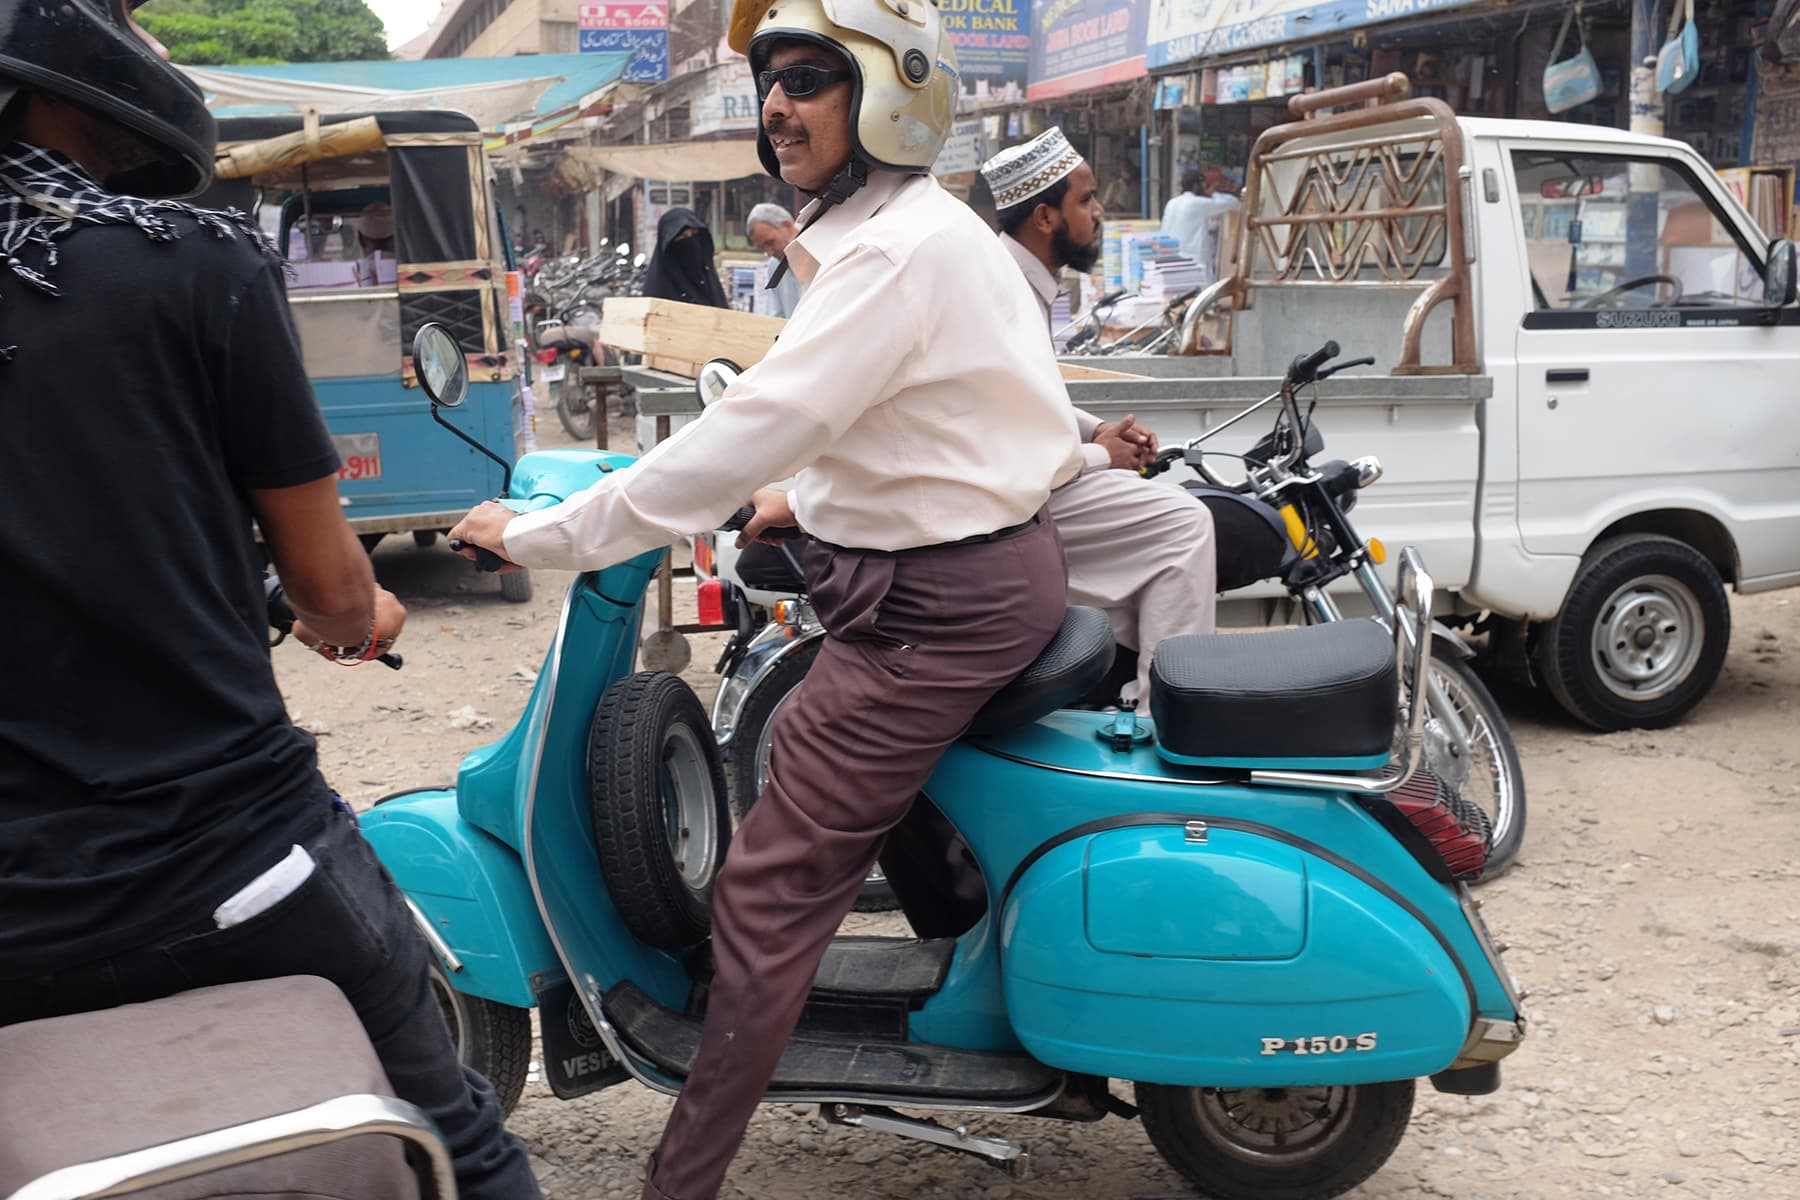 We spot a lot of people going about their business in Vespas.